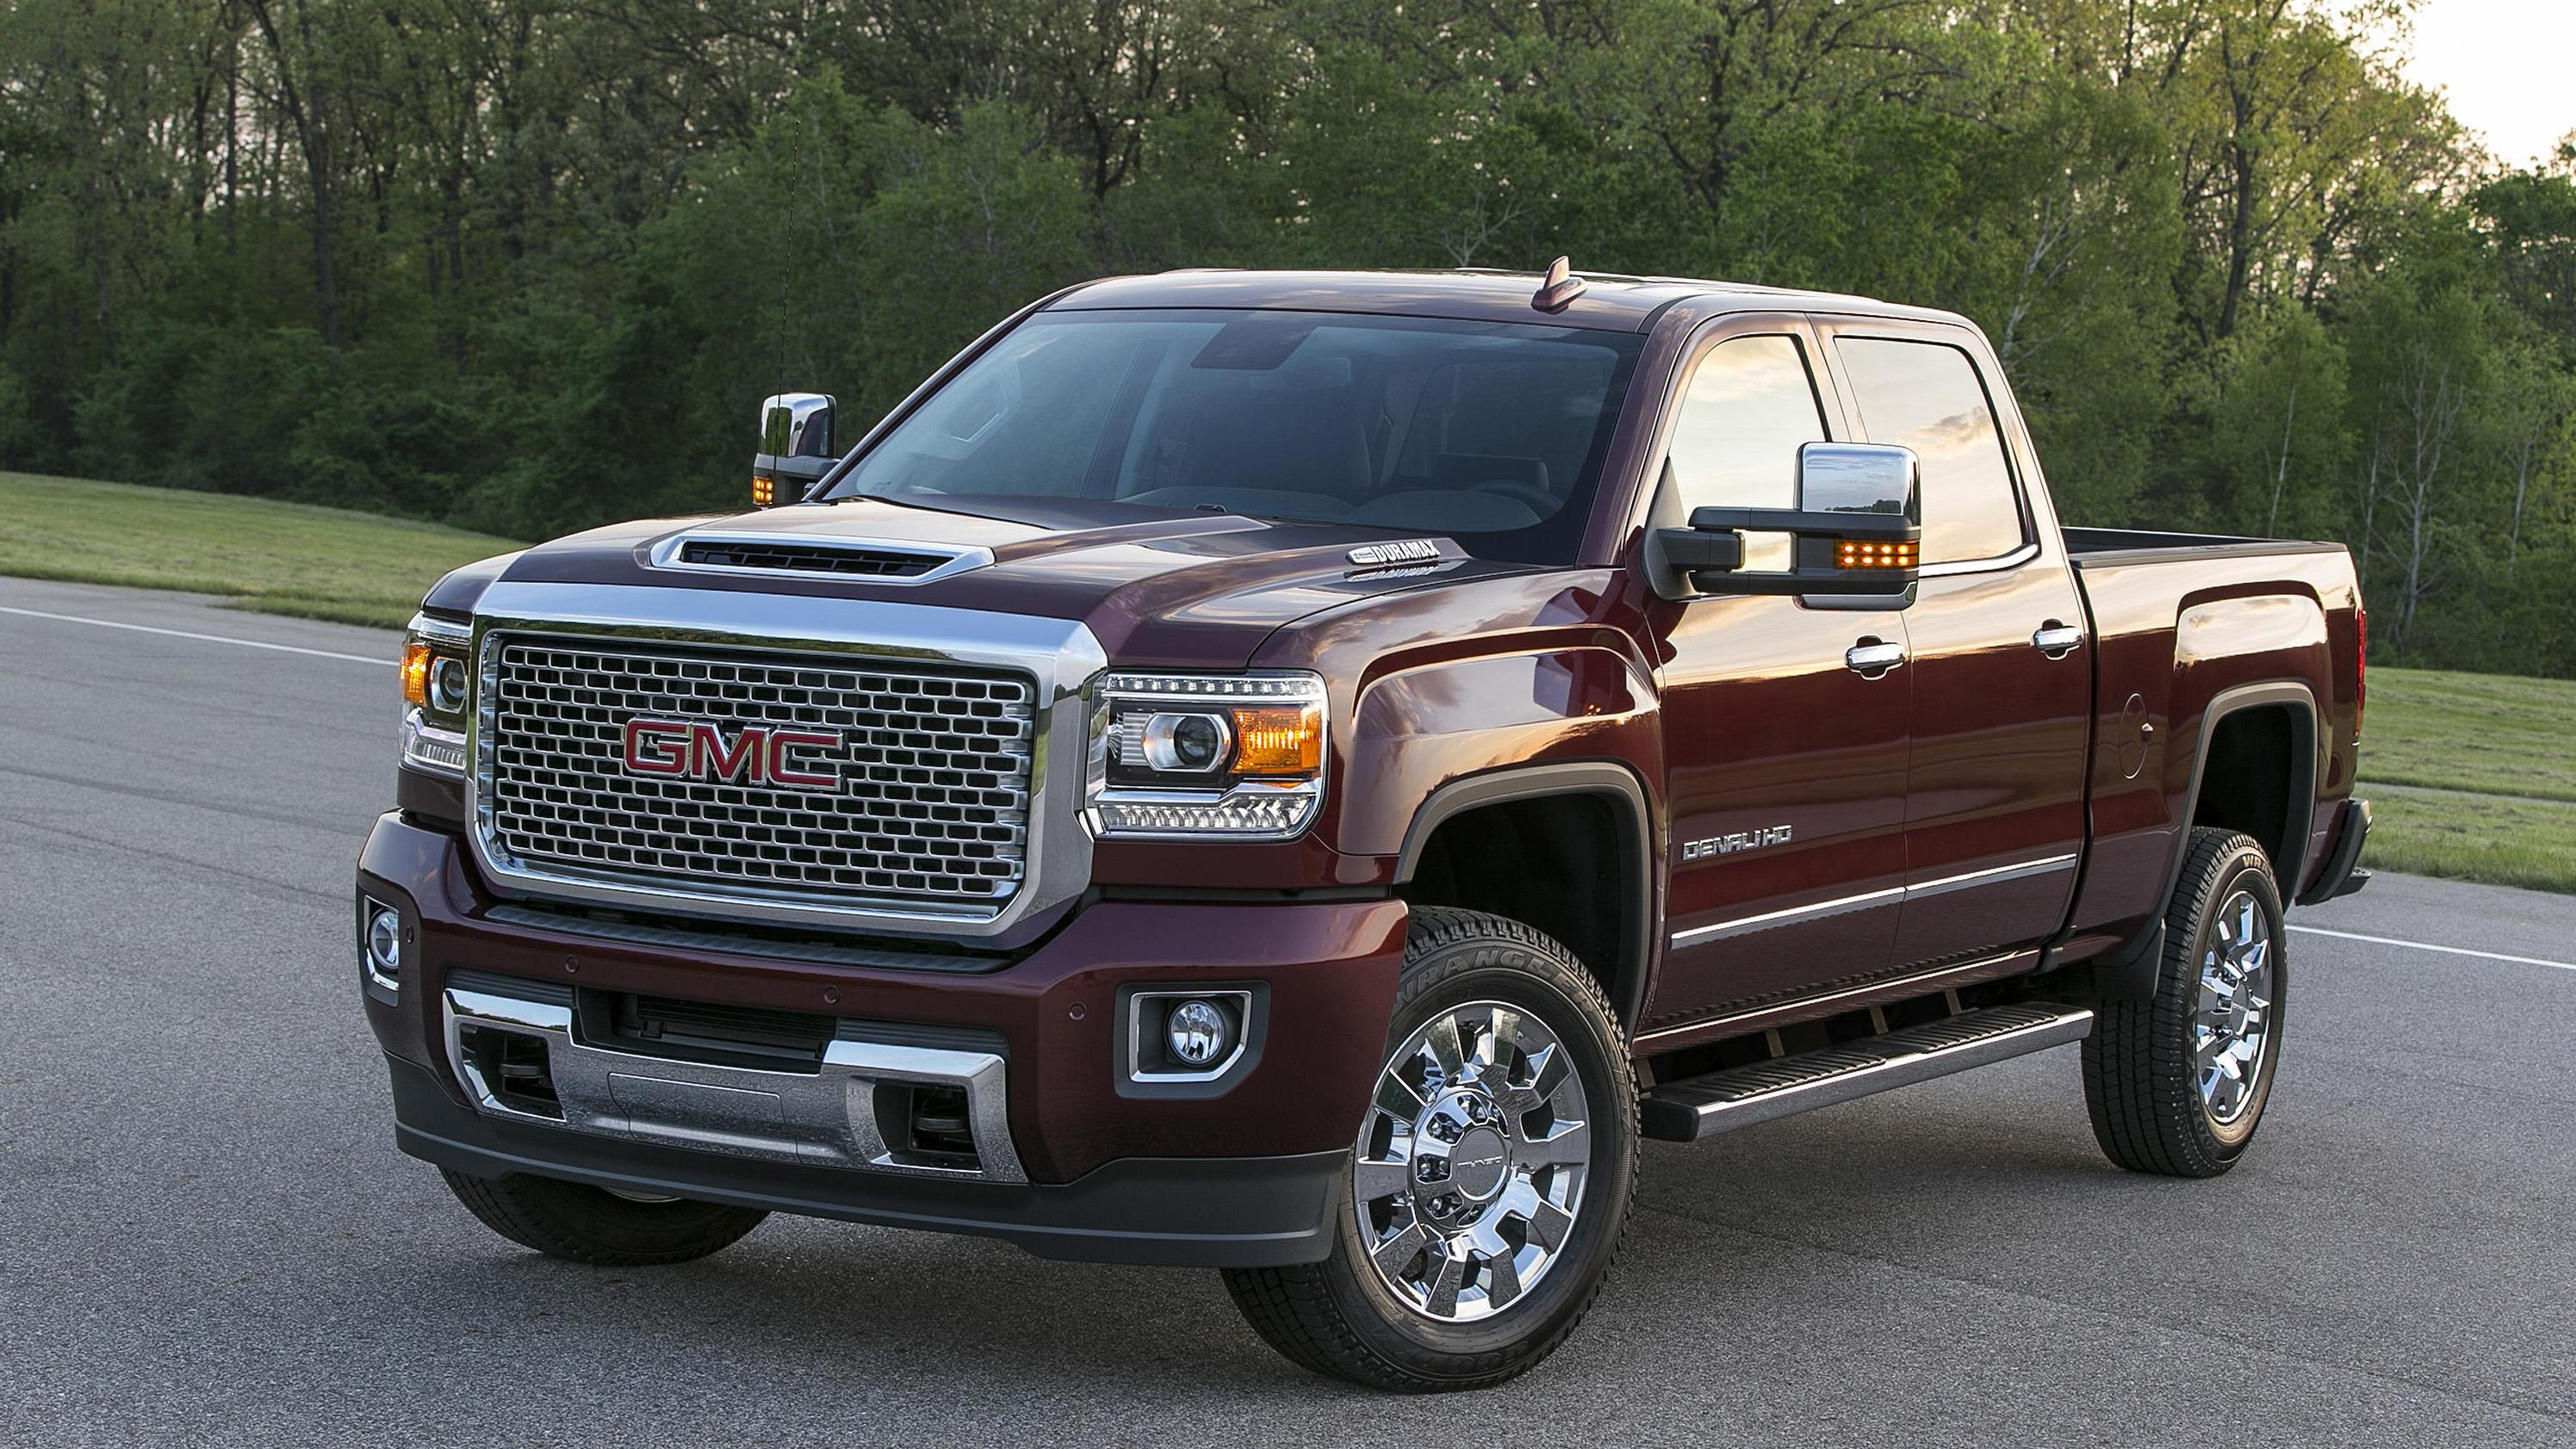 sale for gmc edition information and carbonedition news carbon sierra